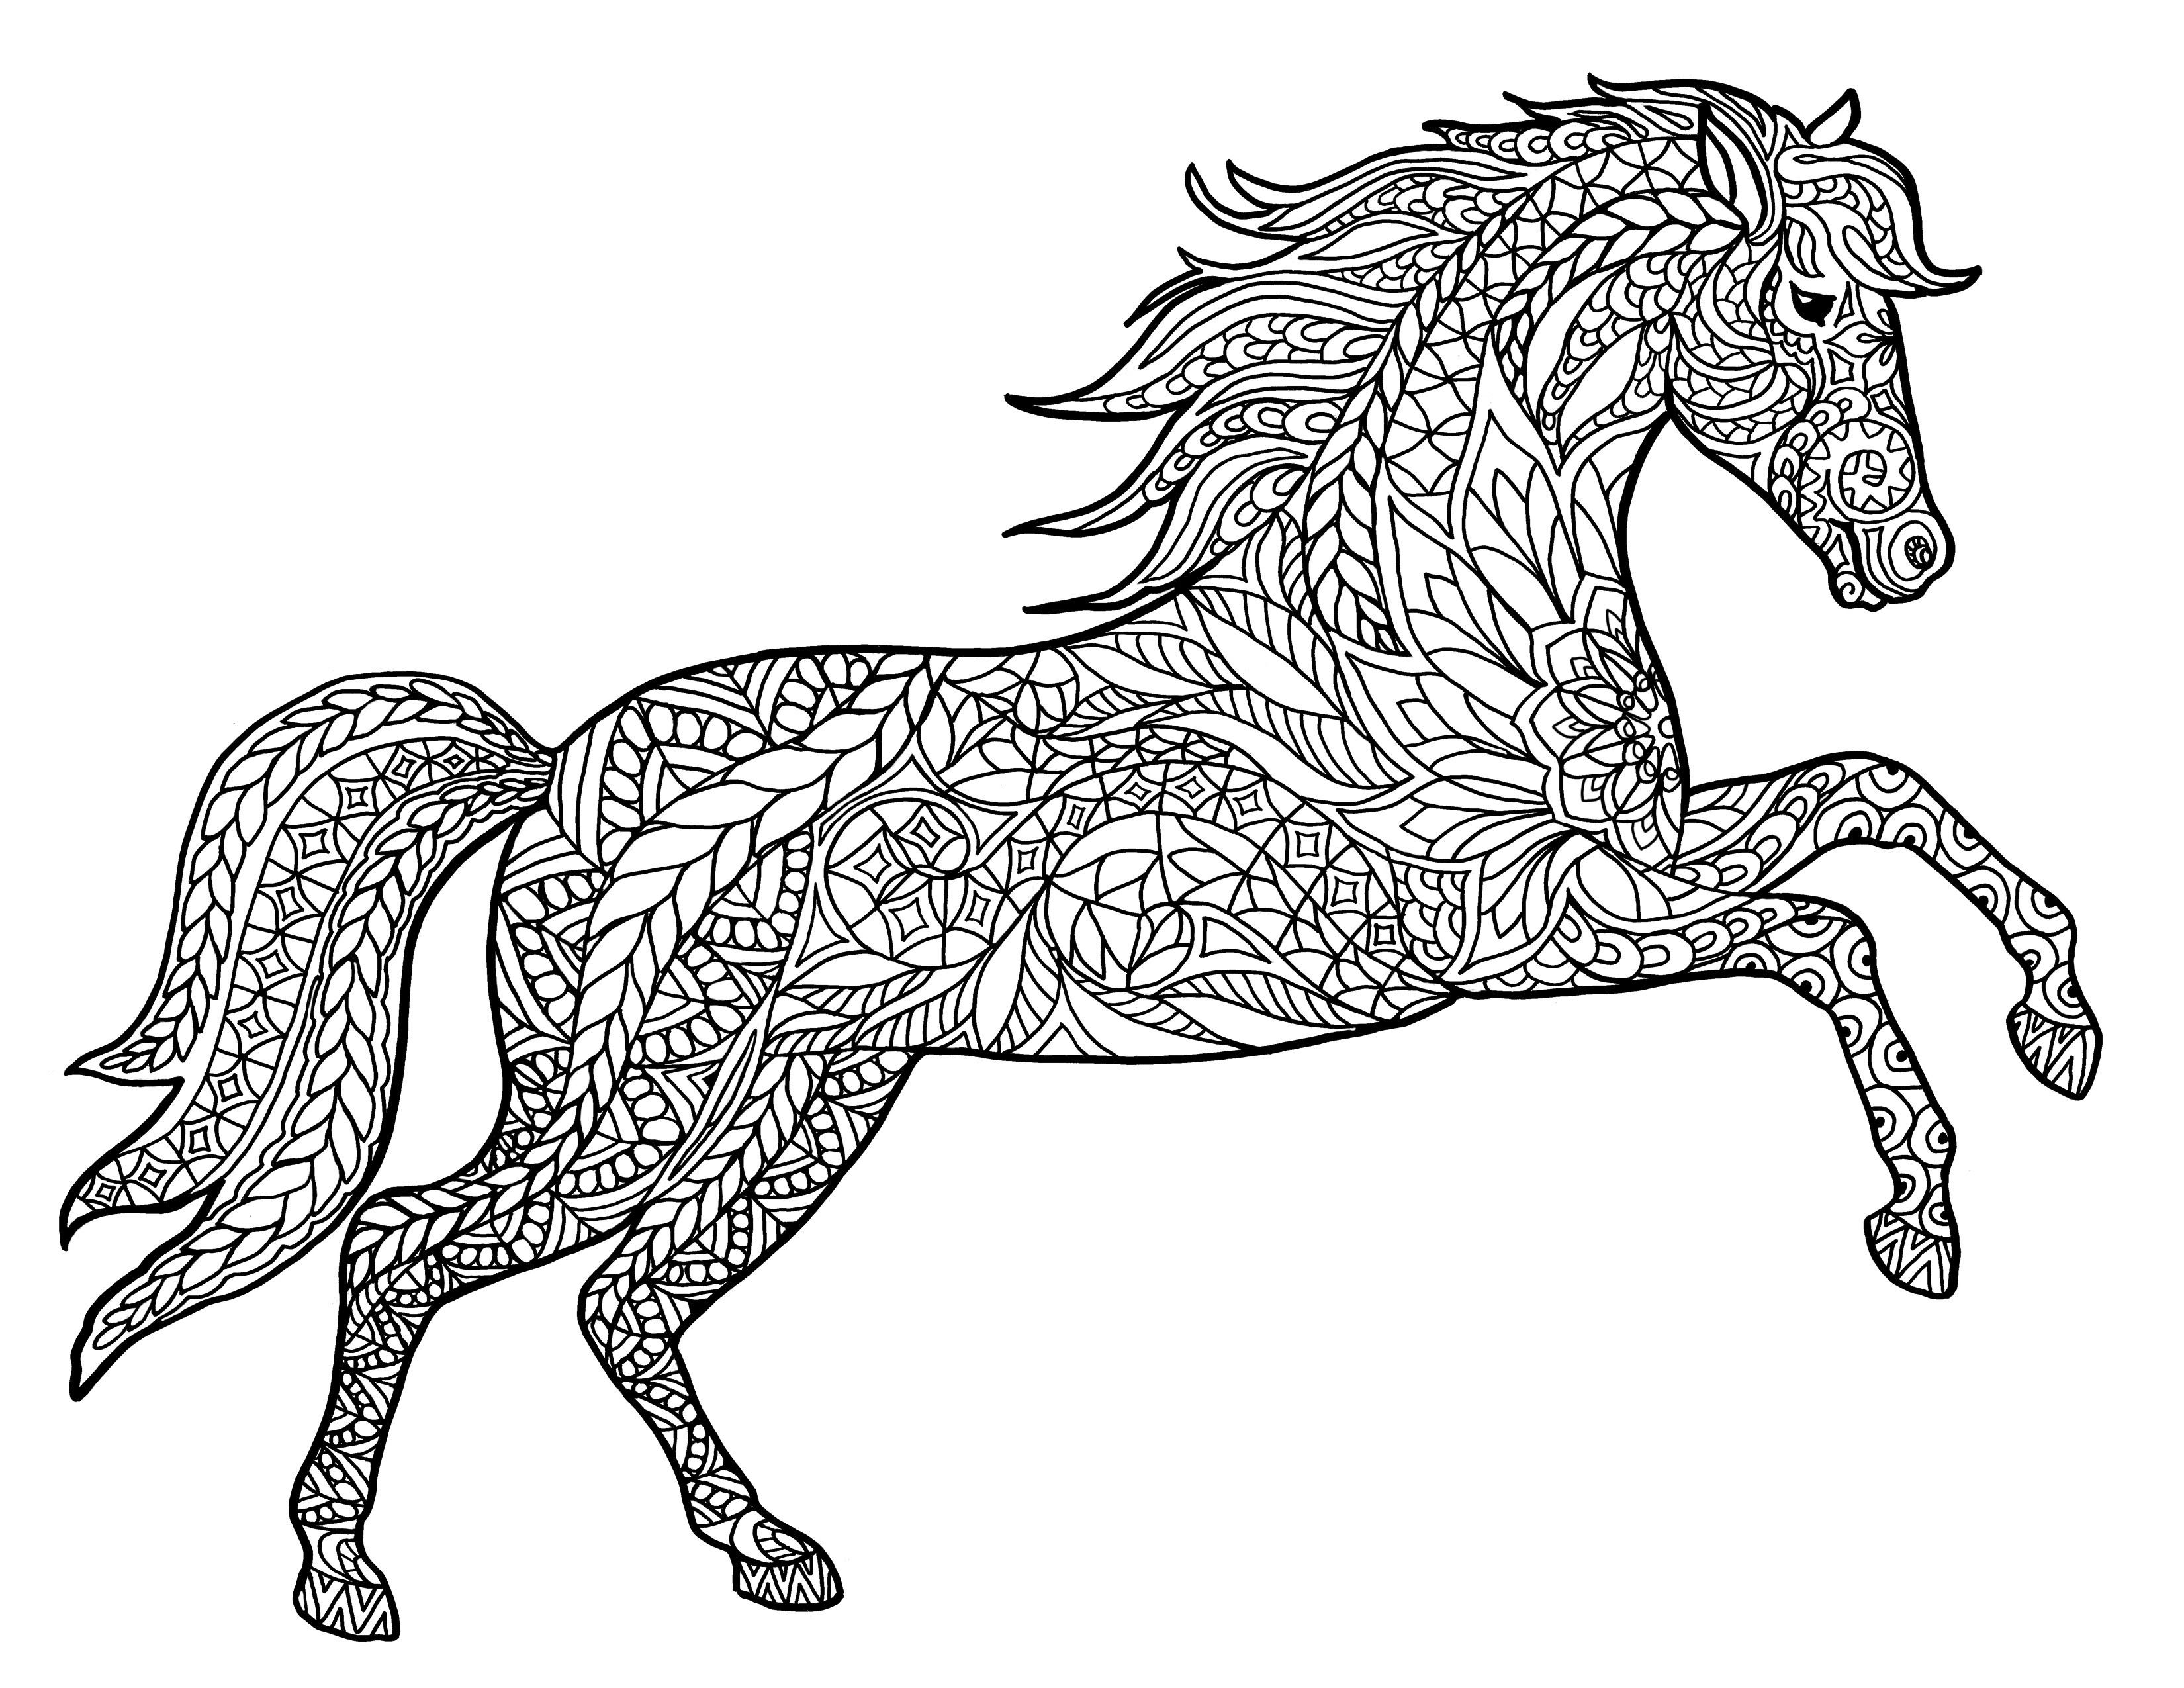 animal pictures coloring pages top 25 free printable coloring pages of animals online pictures animal coloring pages